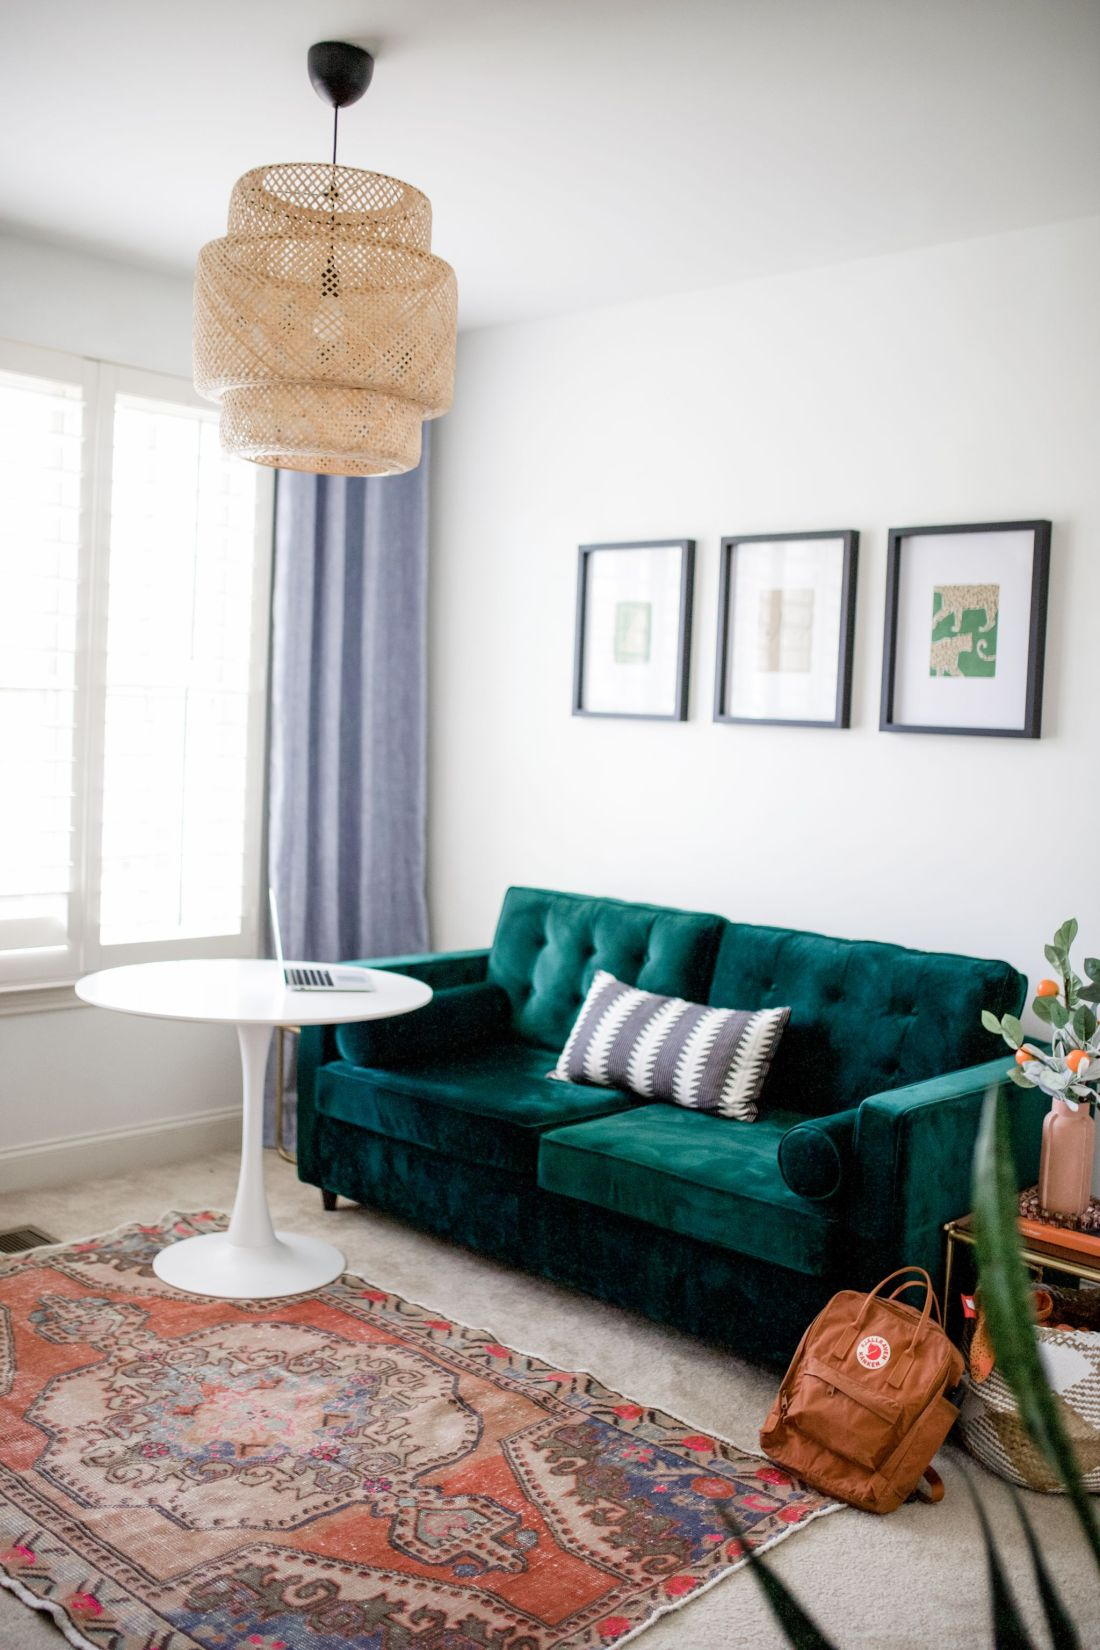 Homeshcool Room by popular Nashville life and style blog, Modern Day Moguls: image of a homeschool room with a tuft velvet couch, Persian rug, round white table, and wicker light pendant.